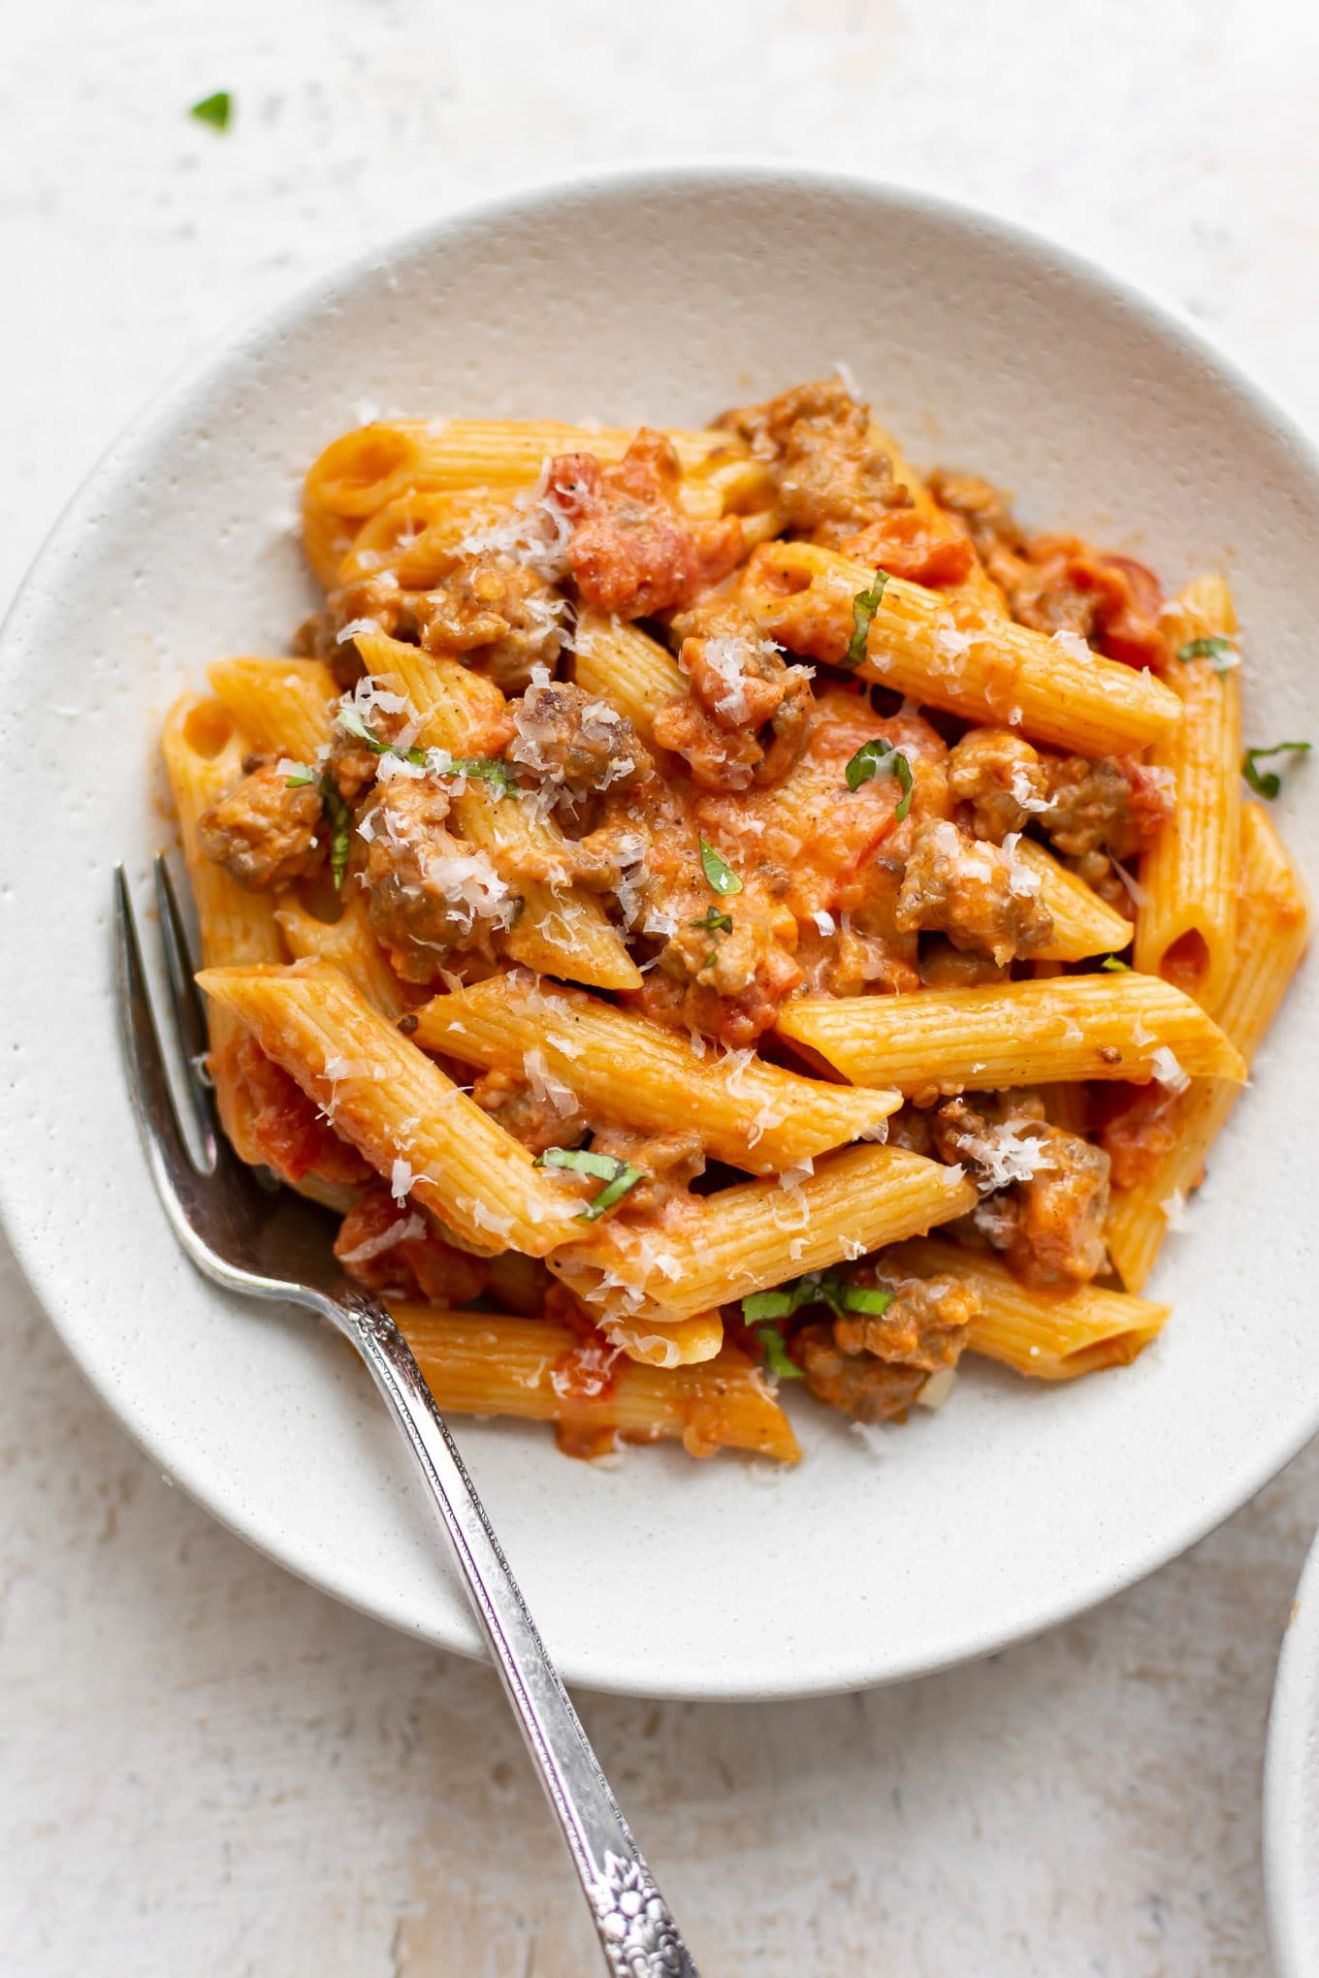 Spicy Italian Sausage Pasta • Salt & Lavender - Recipes Pasta With Sausage